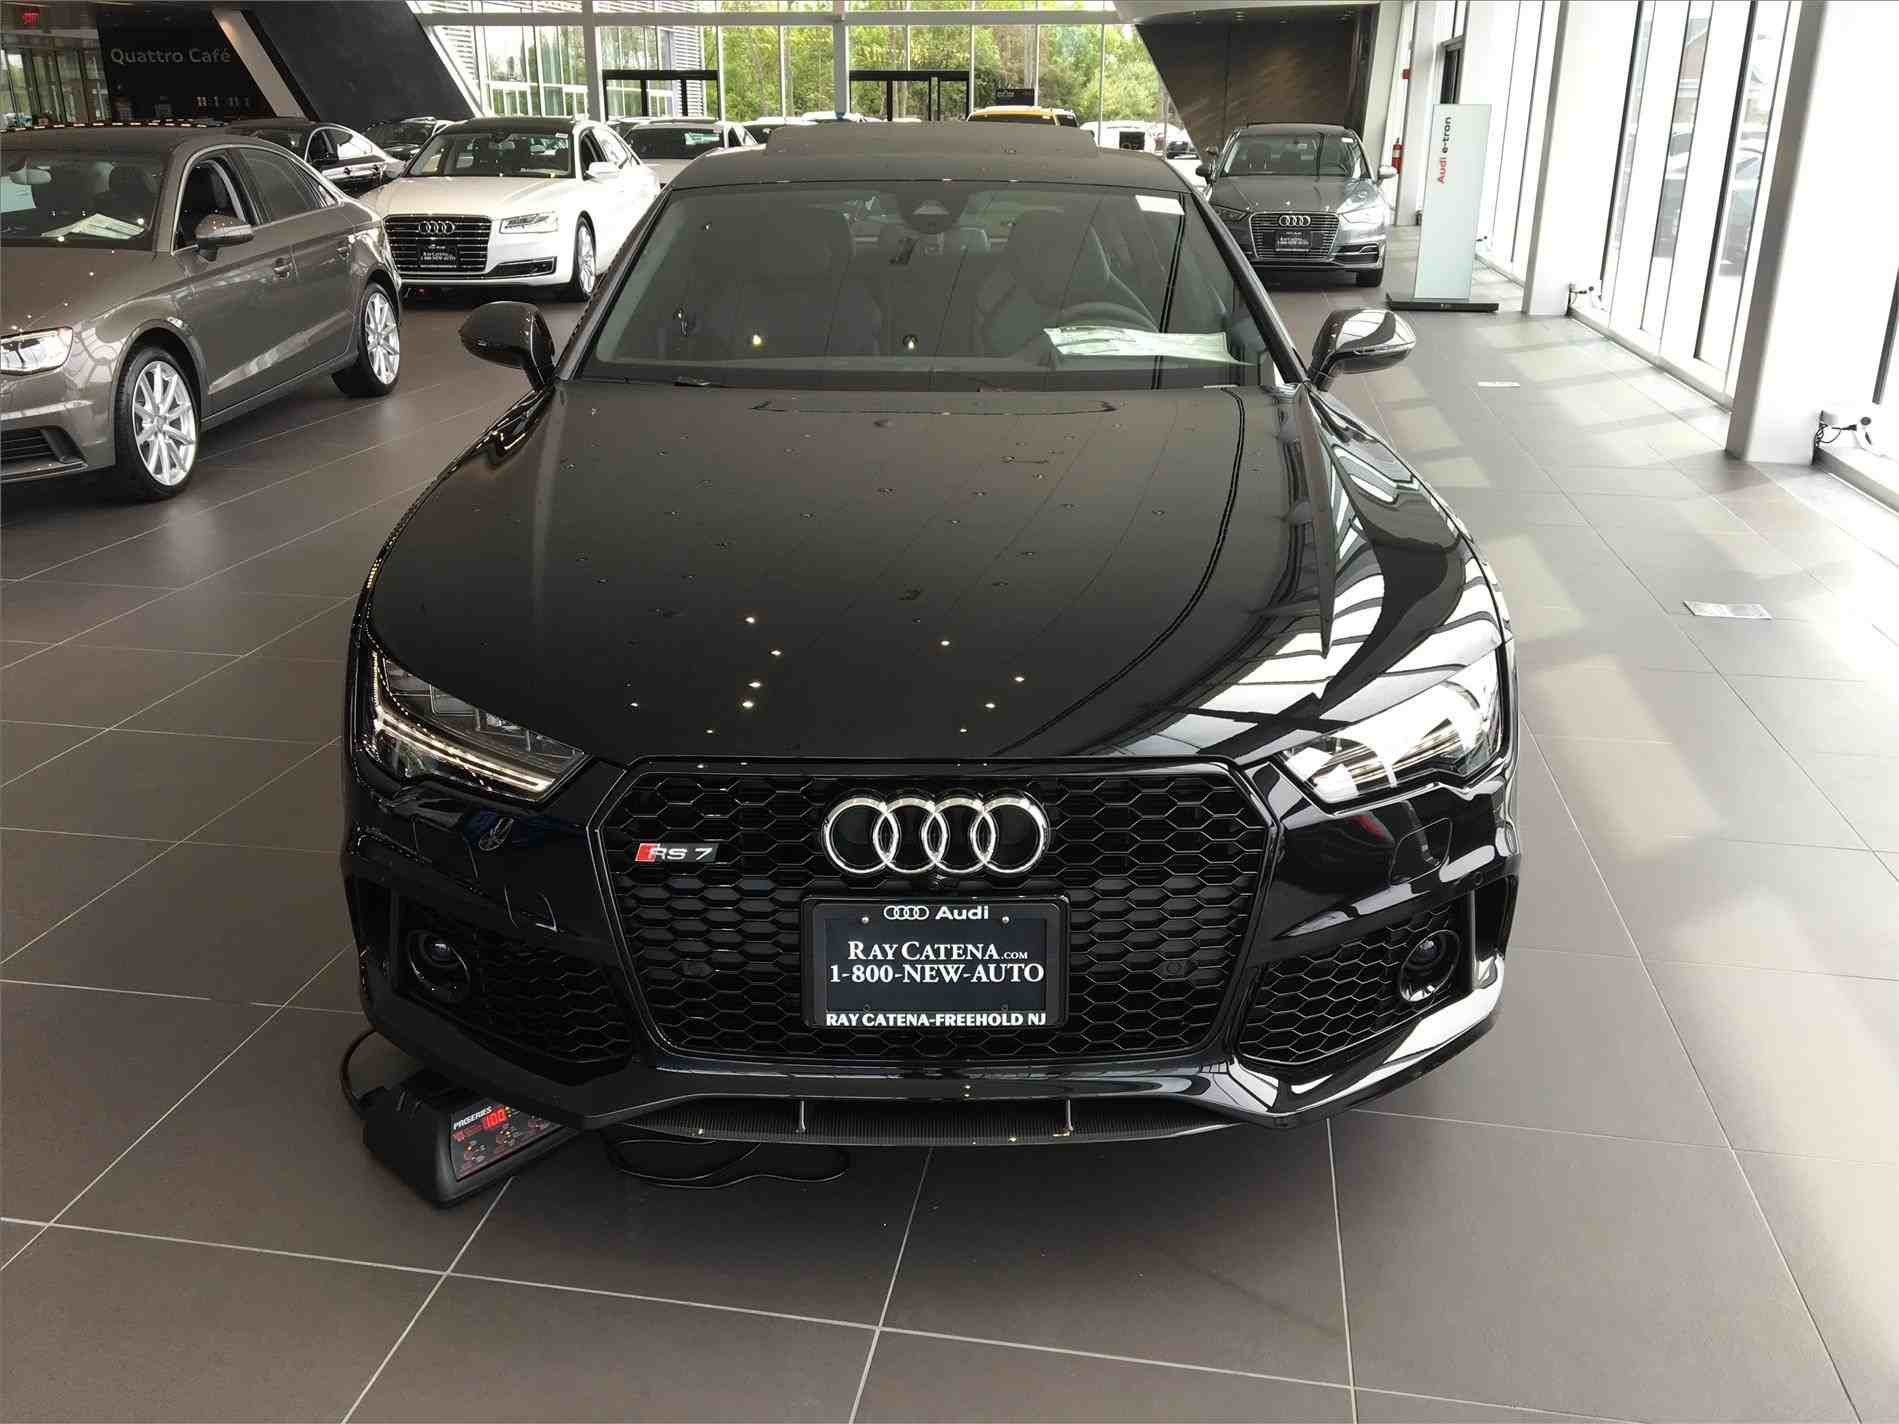 Unique Luxury Cars For Sale Near Me: Unique Cars For Sale Near Me Audi